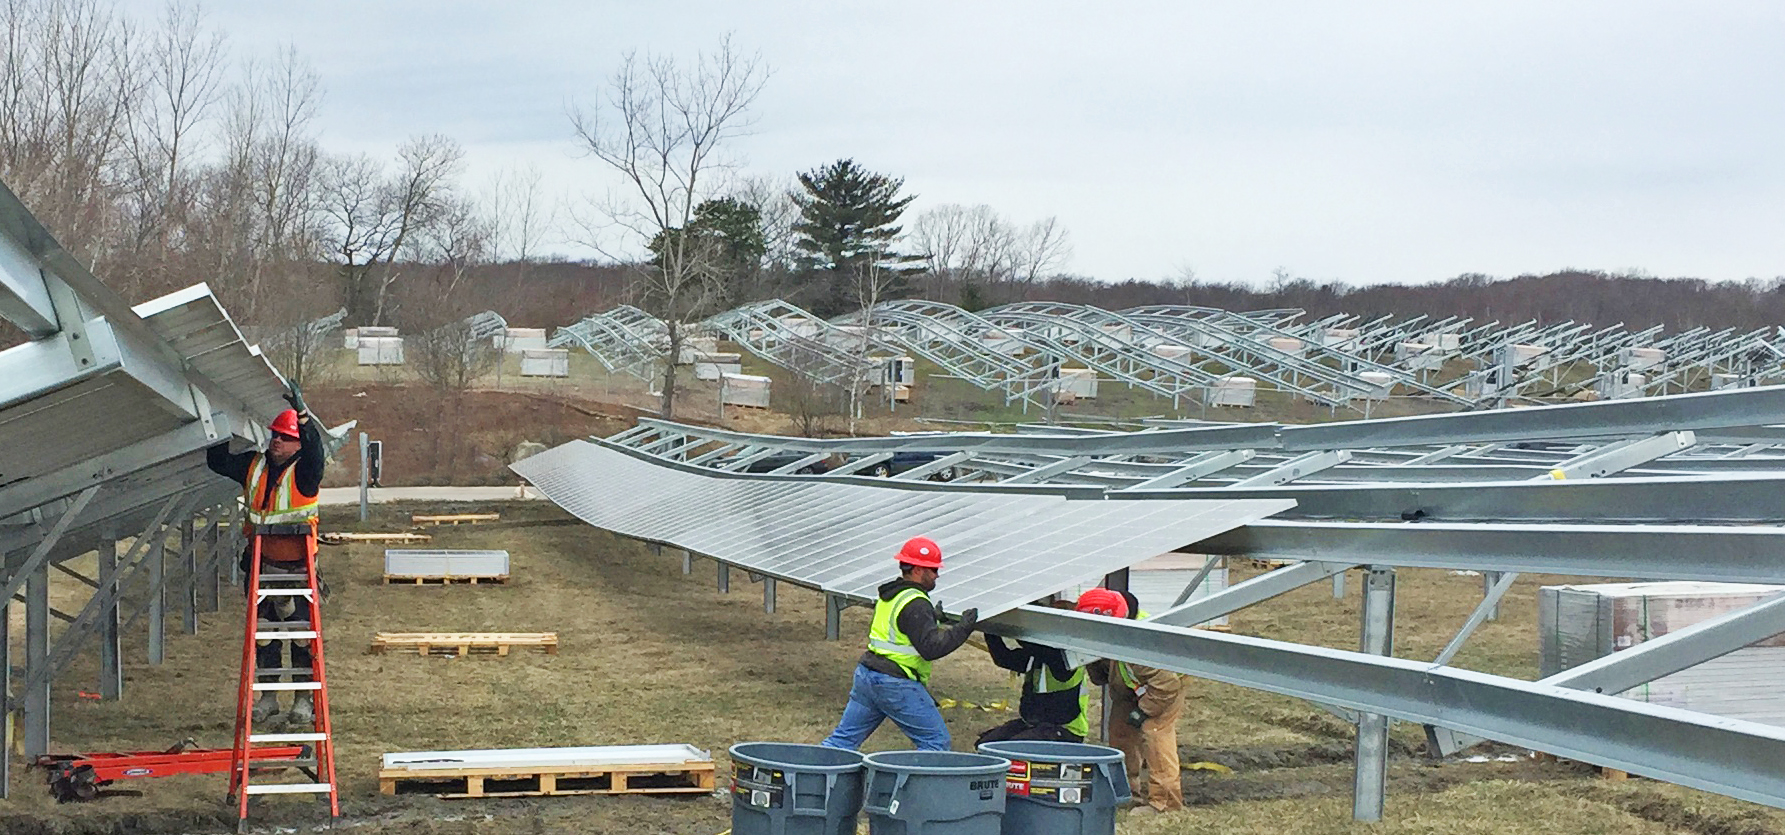 Over the past four years, Conti Solar has not recorded a single injury to an employee. Image: Conti Solar